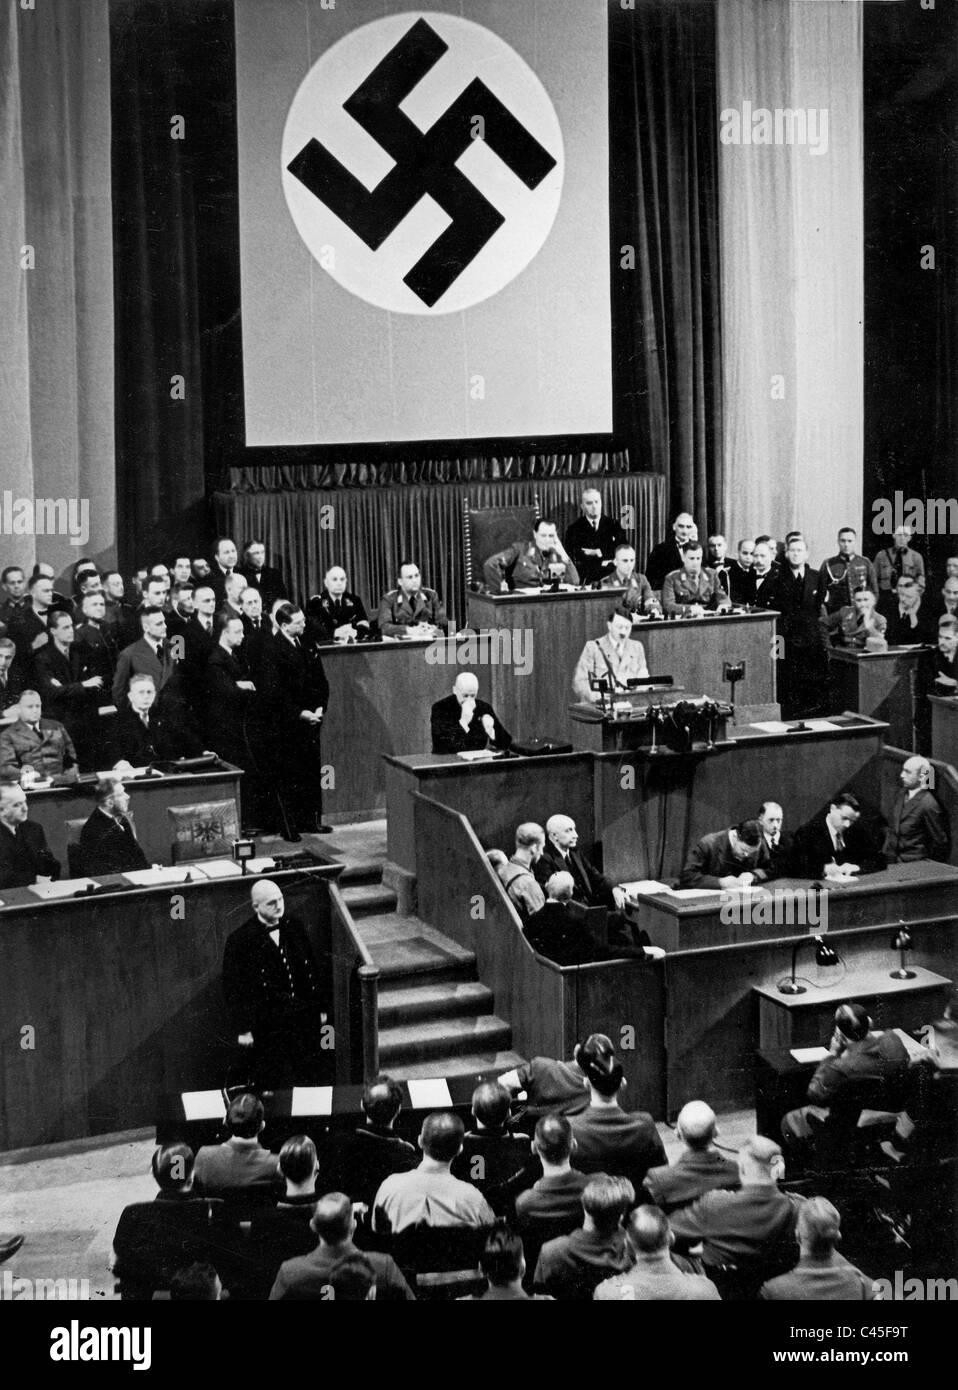 Hitler speaks at the Reichstag 1934 - Stock Image